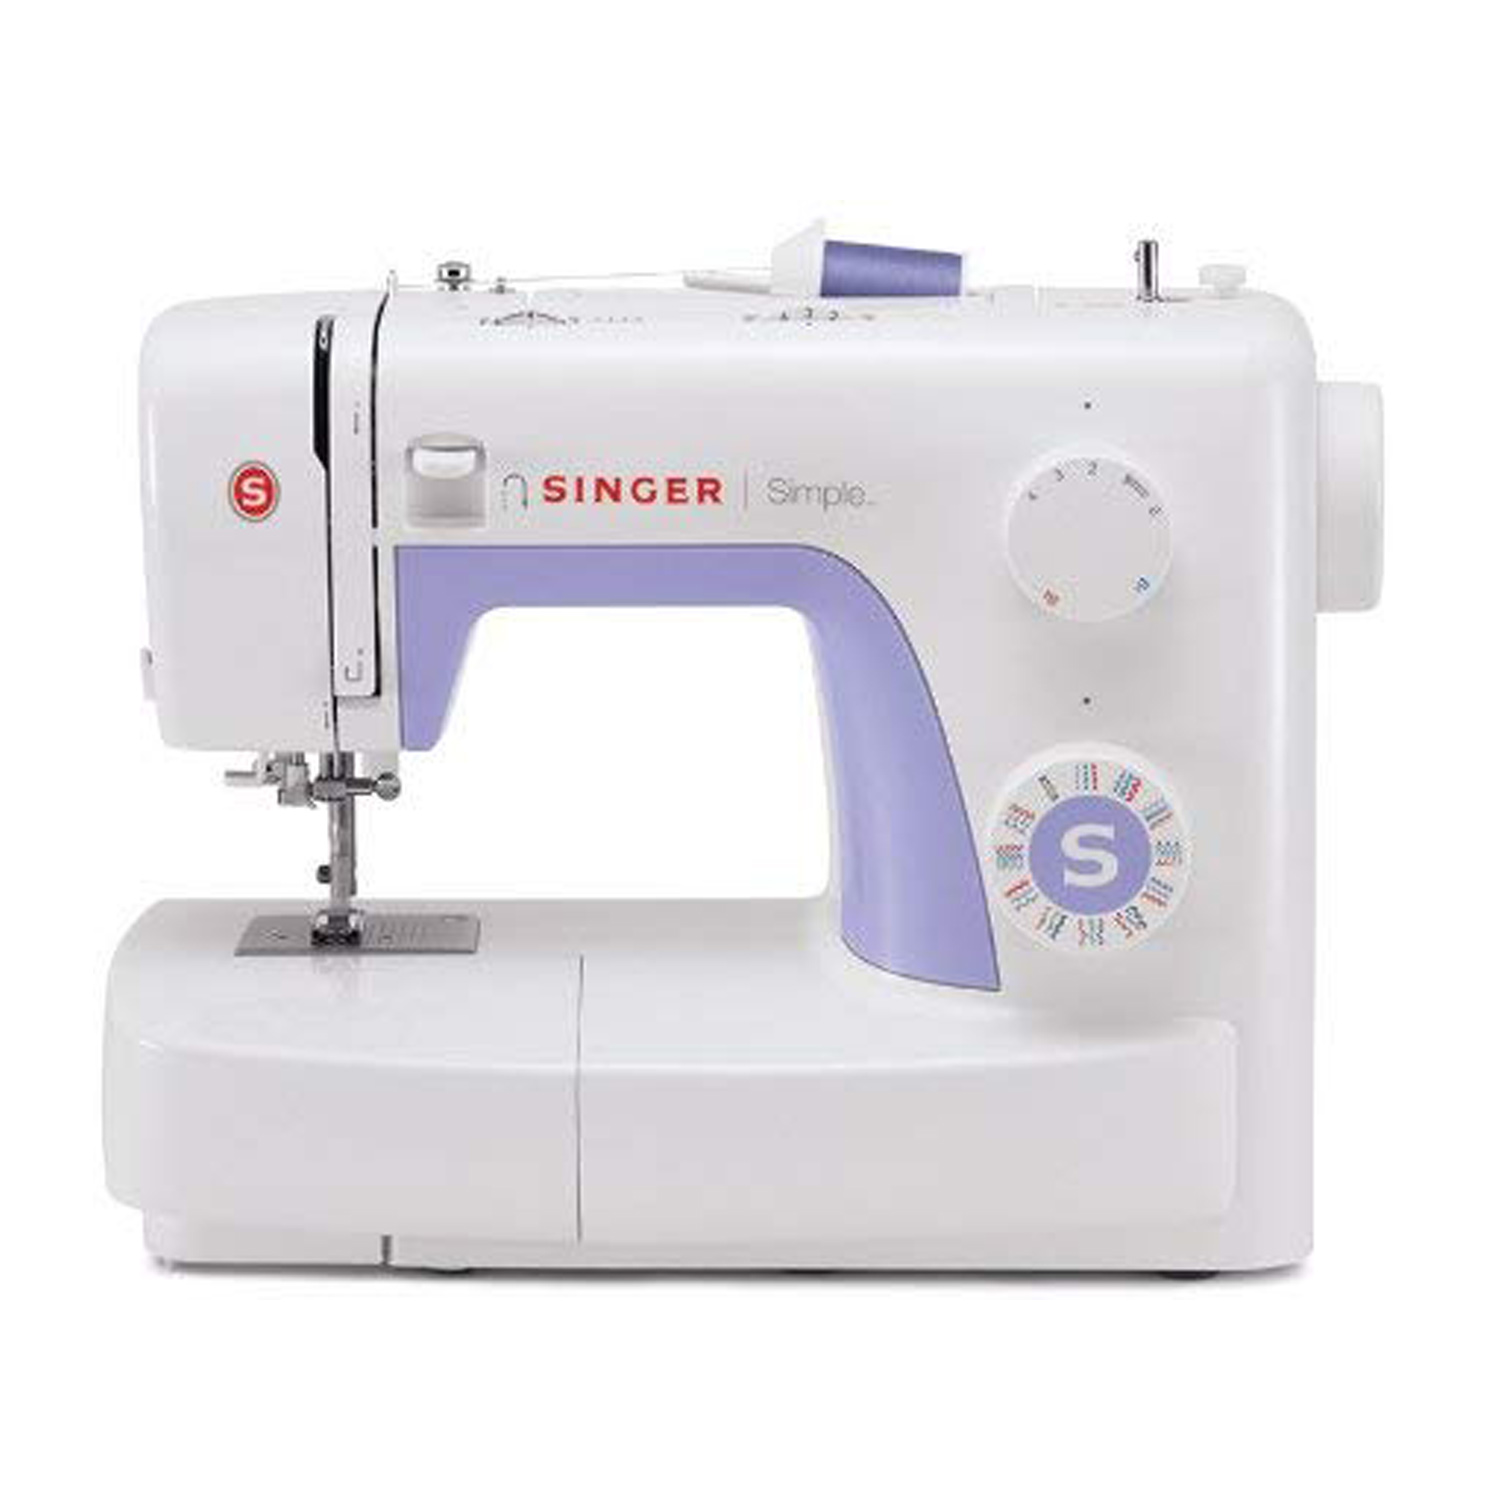 Singer 3232 Sewing Machine